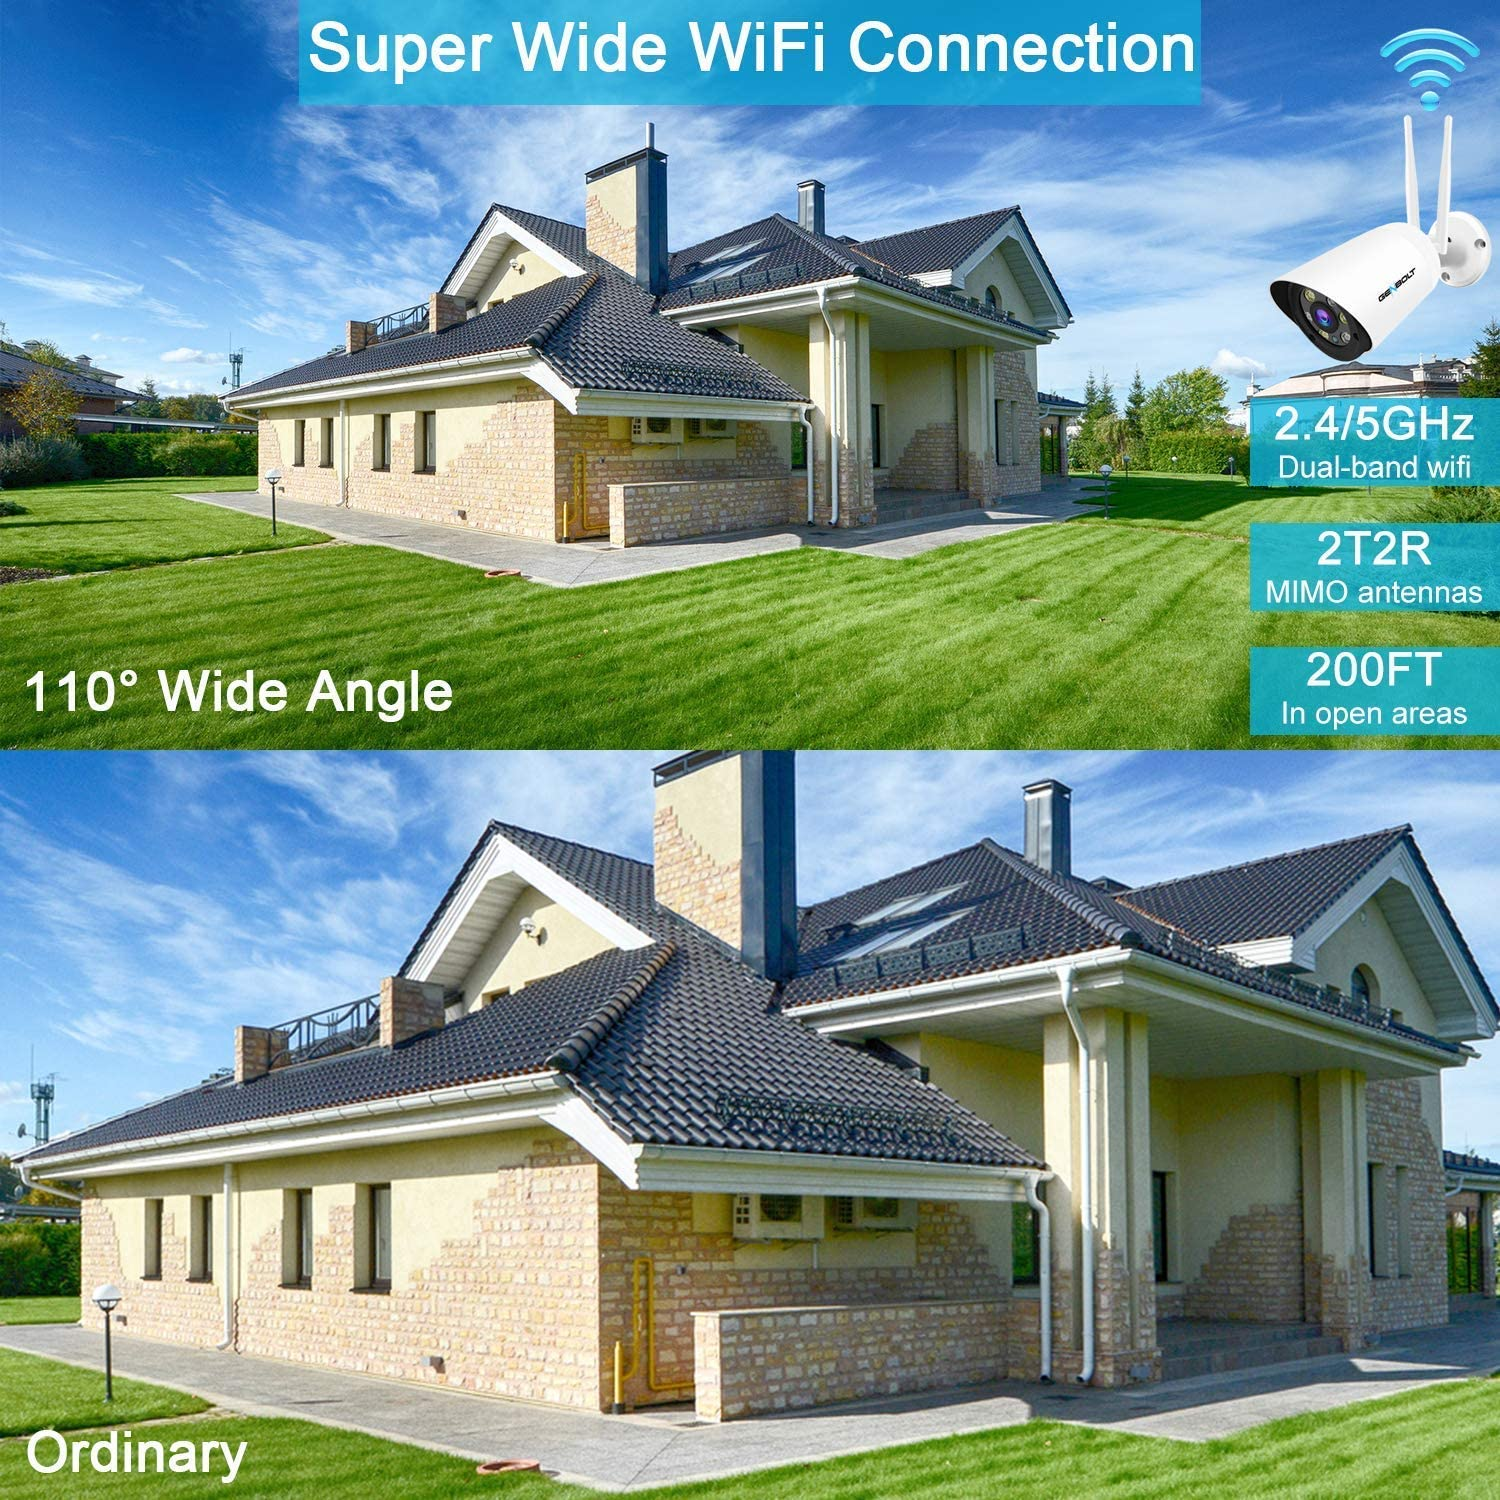 2.4//5GHz Floodlight Security Camera Outdoor,GENBOLT Wireless WiFi IP Home Surveillance Camera 1080P,AI Humanoid Motion Detection,Two-Way Audio,110/° Super Wide View,Instant Image Activity Alert